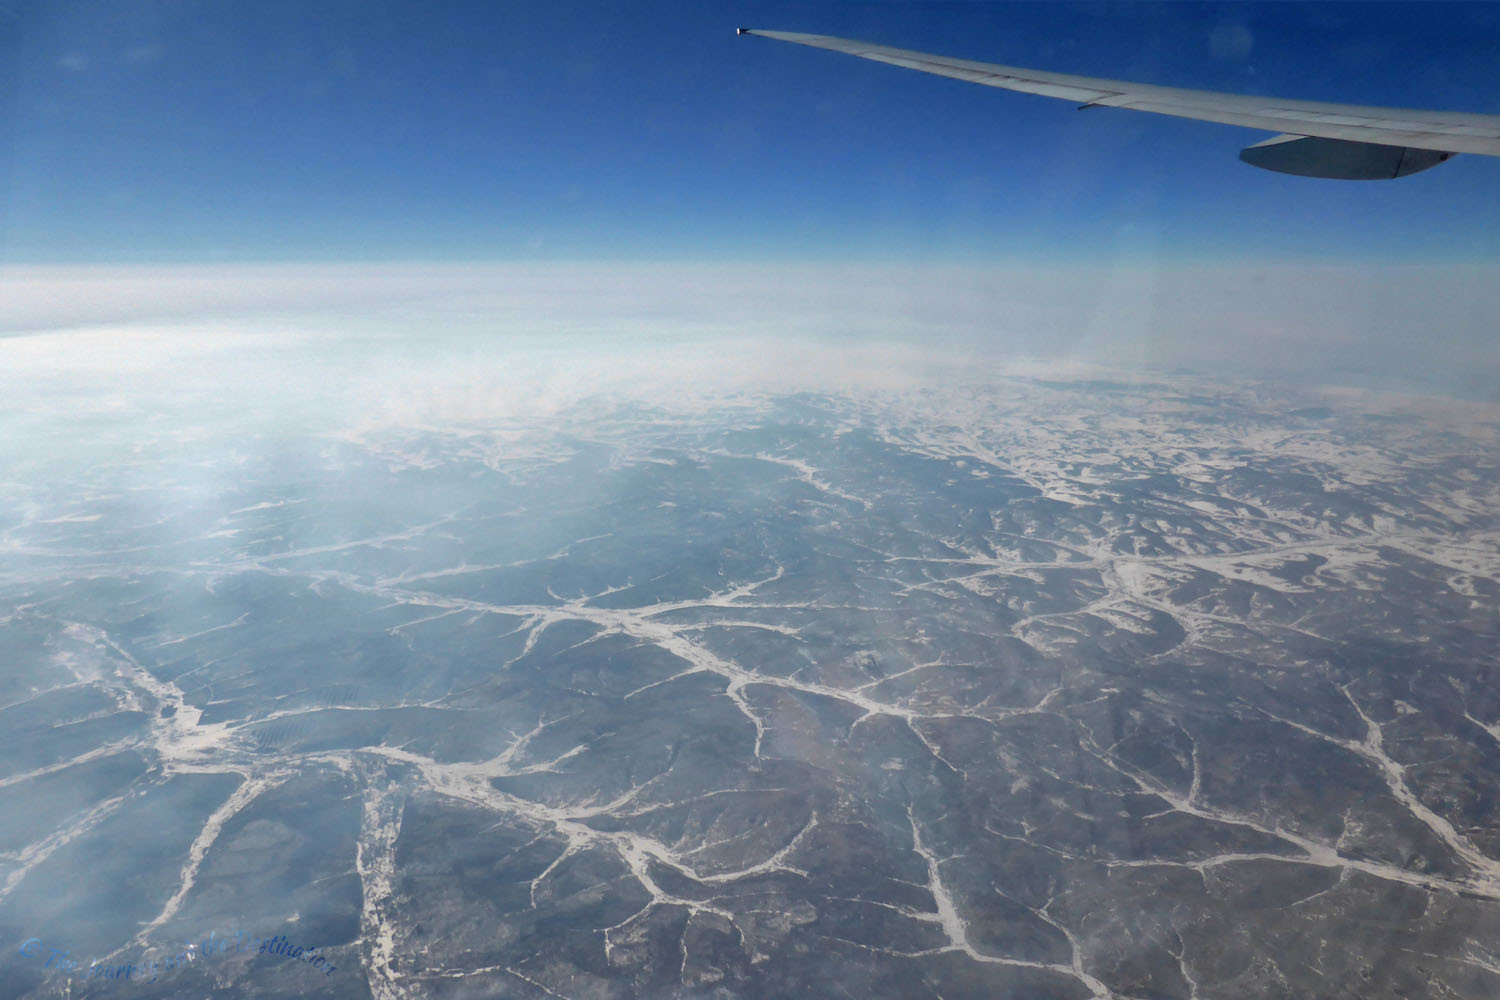 Snow and ice filled valleys in mountains in either China or Mongolia